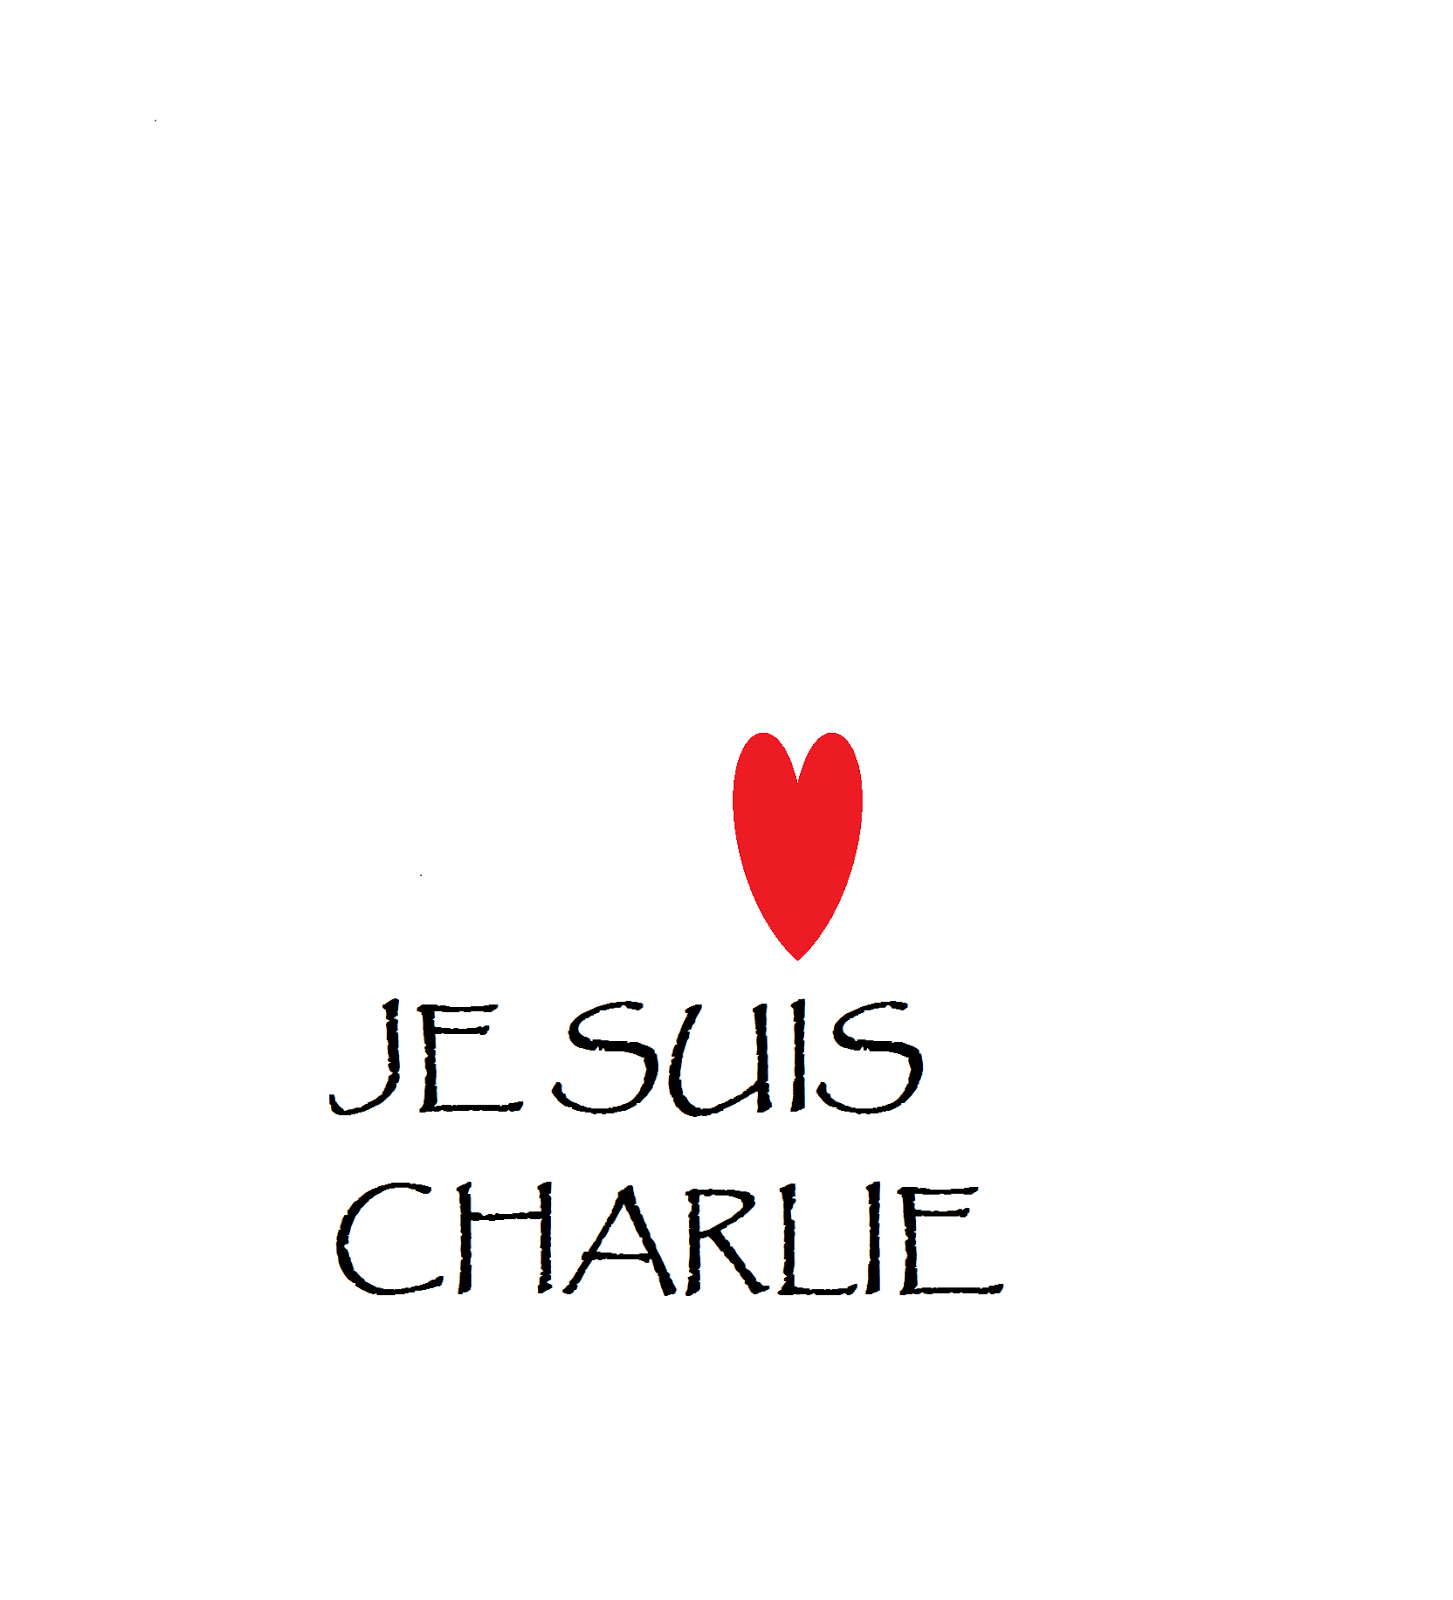 Je suis Charlie, nous sommes Charlie, hommage, 7 janvier 2015, Charlie Hebdo